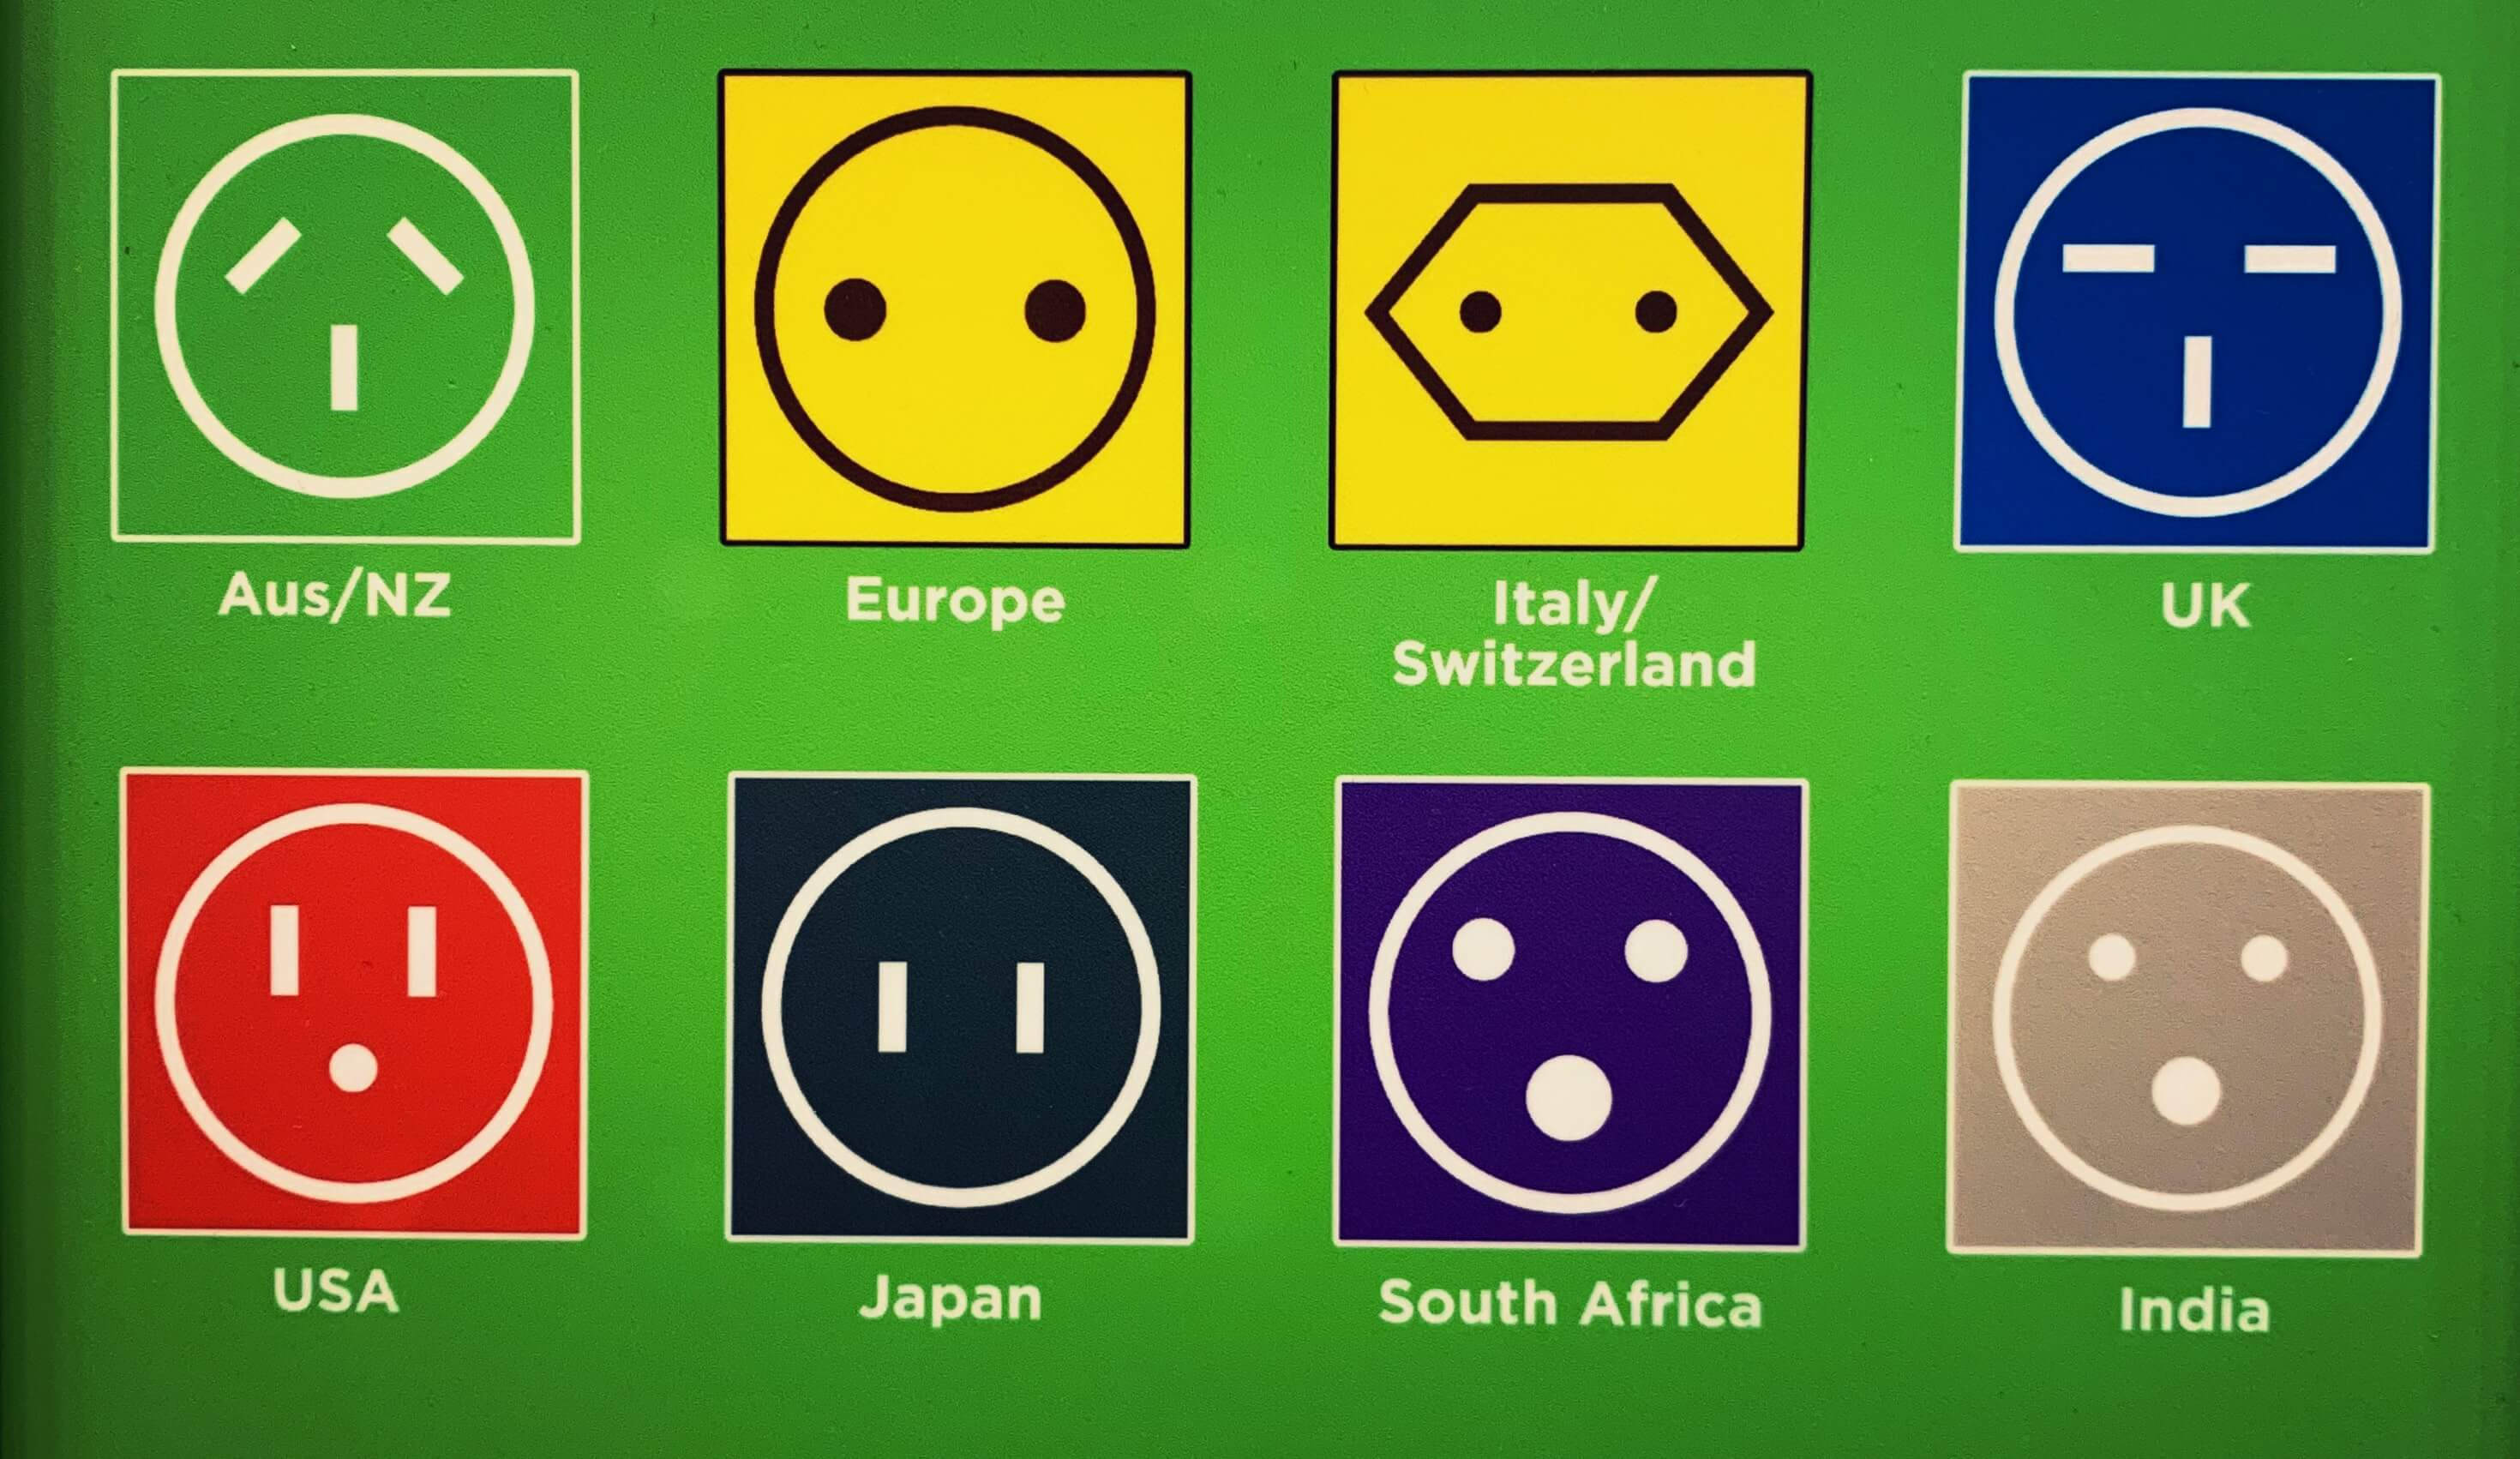 International travel adapters guide